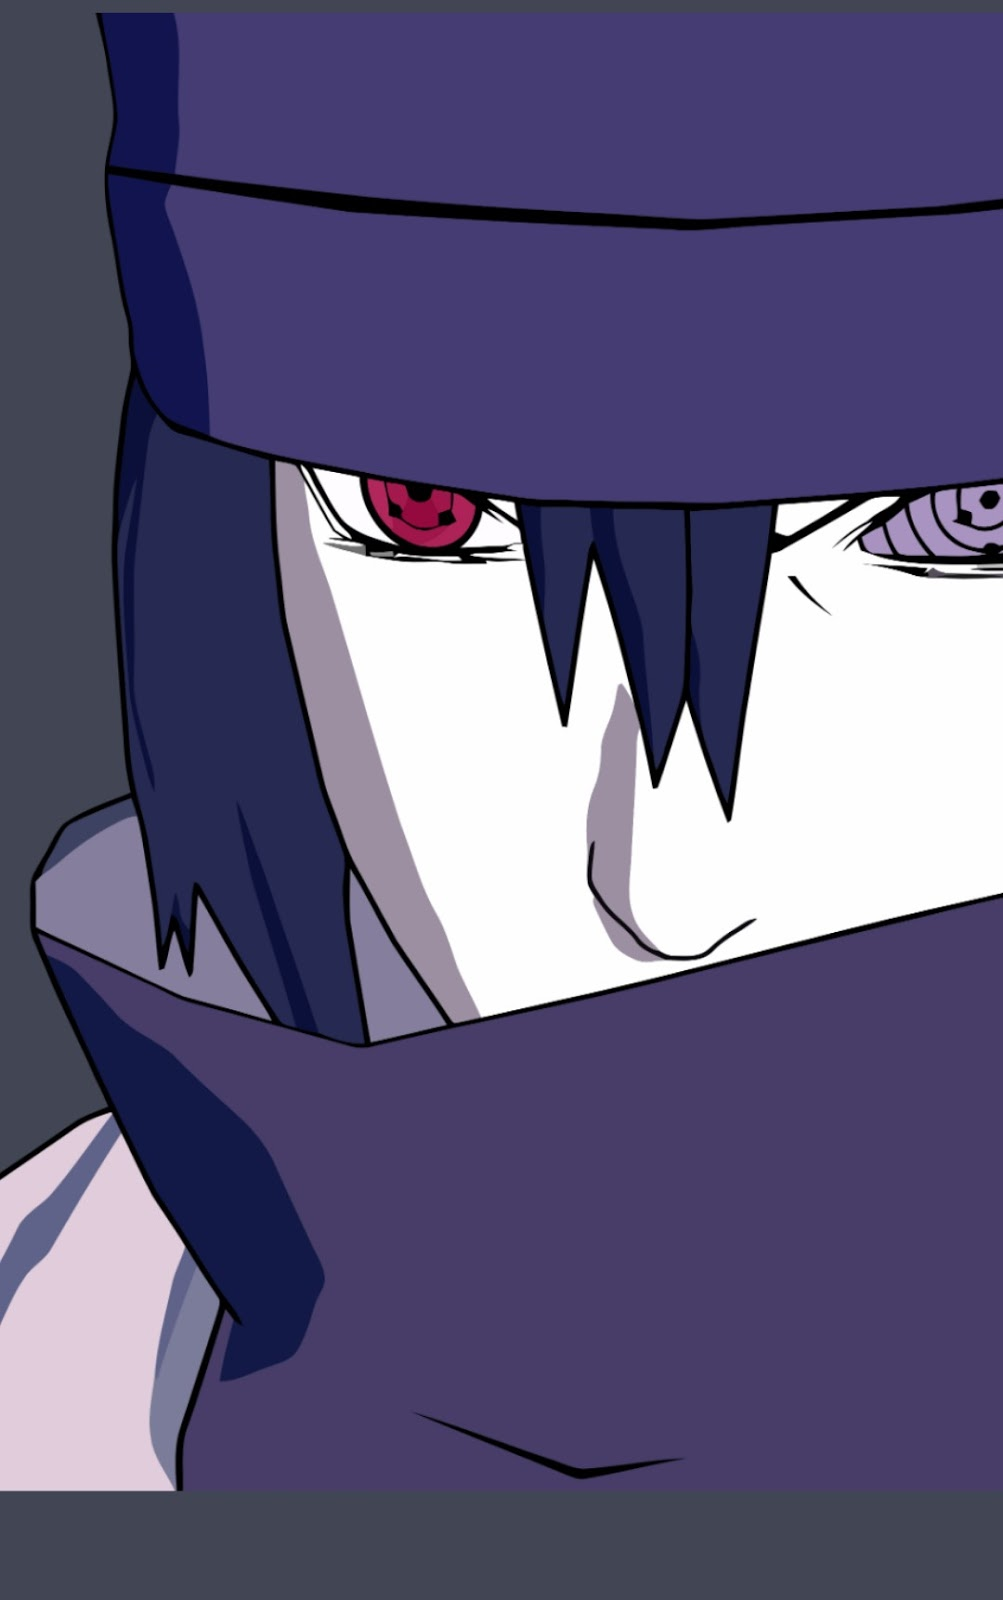 4. Download wallpaper uchiha sasuke vektor untuk android dan whatsApp chat